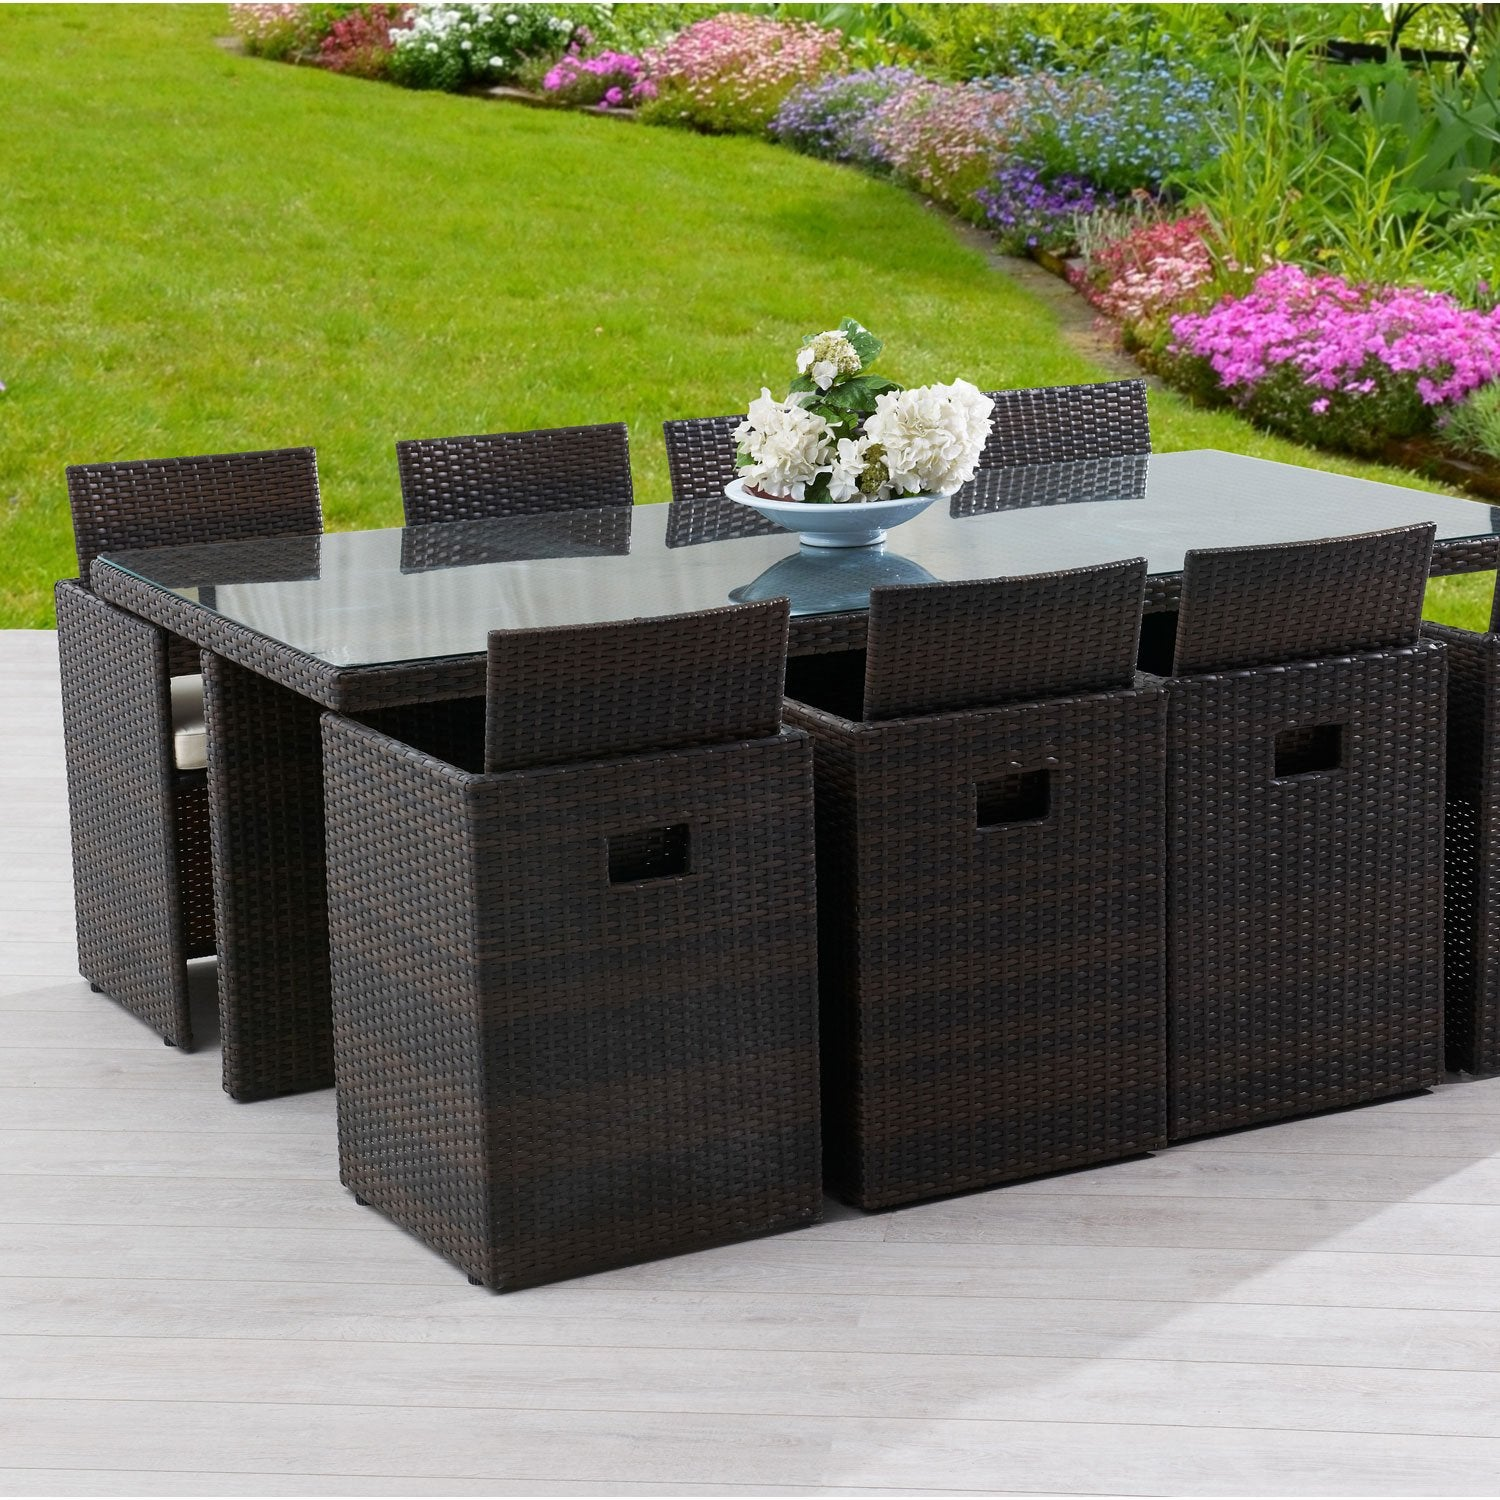 Salon de jardin encastrable r sine tress e marron 1 table for Salon resine tressee solde